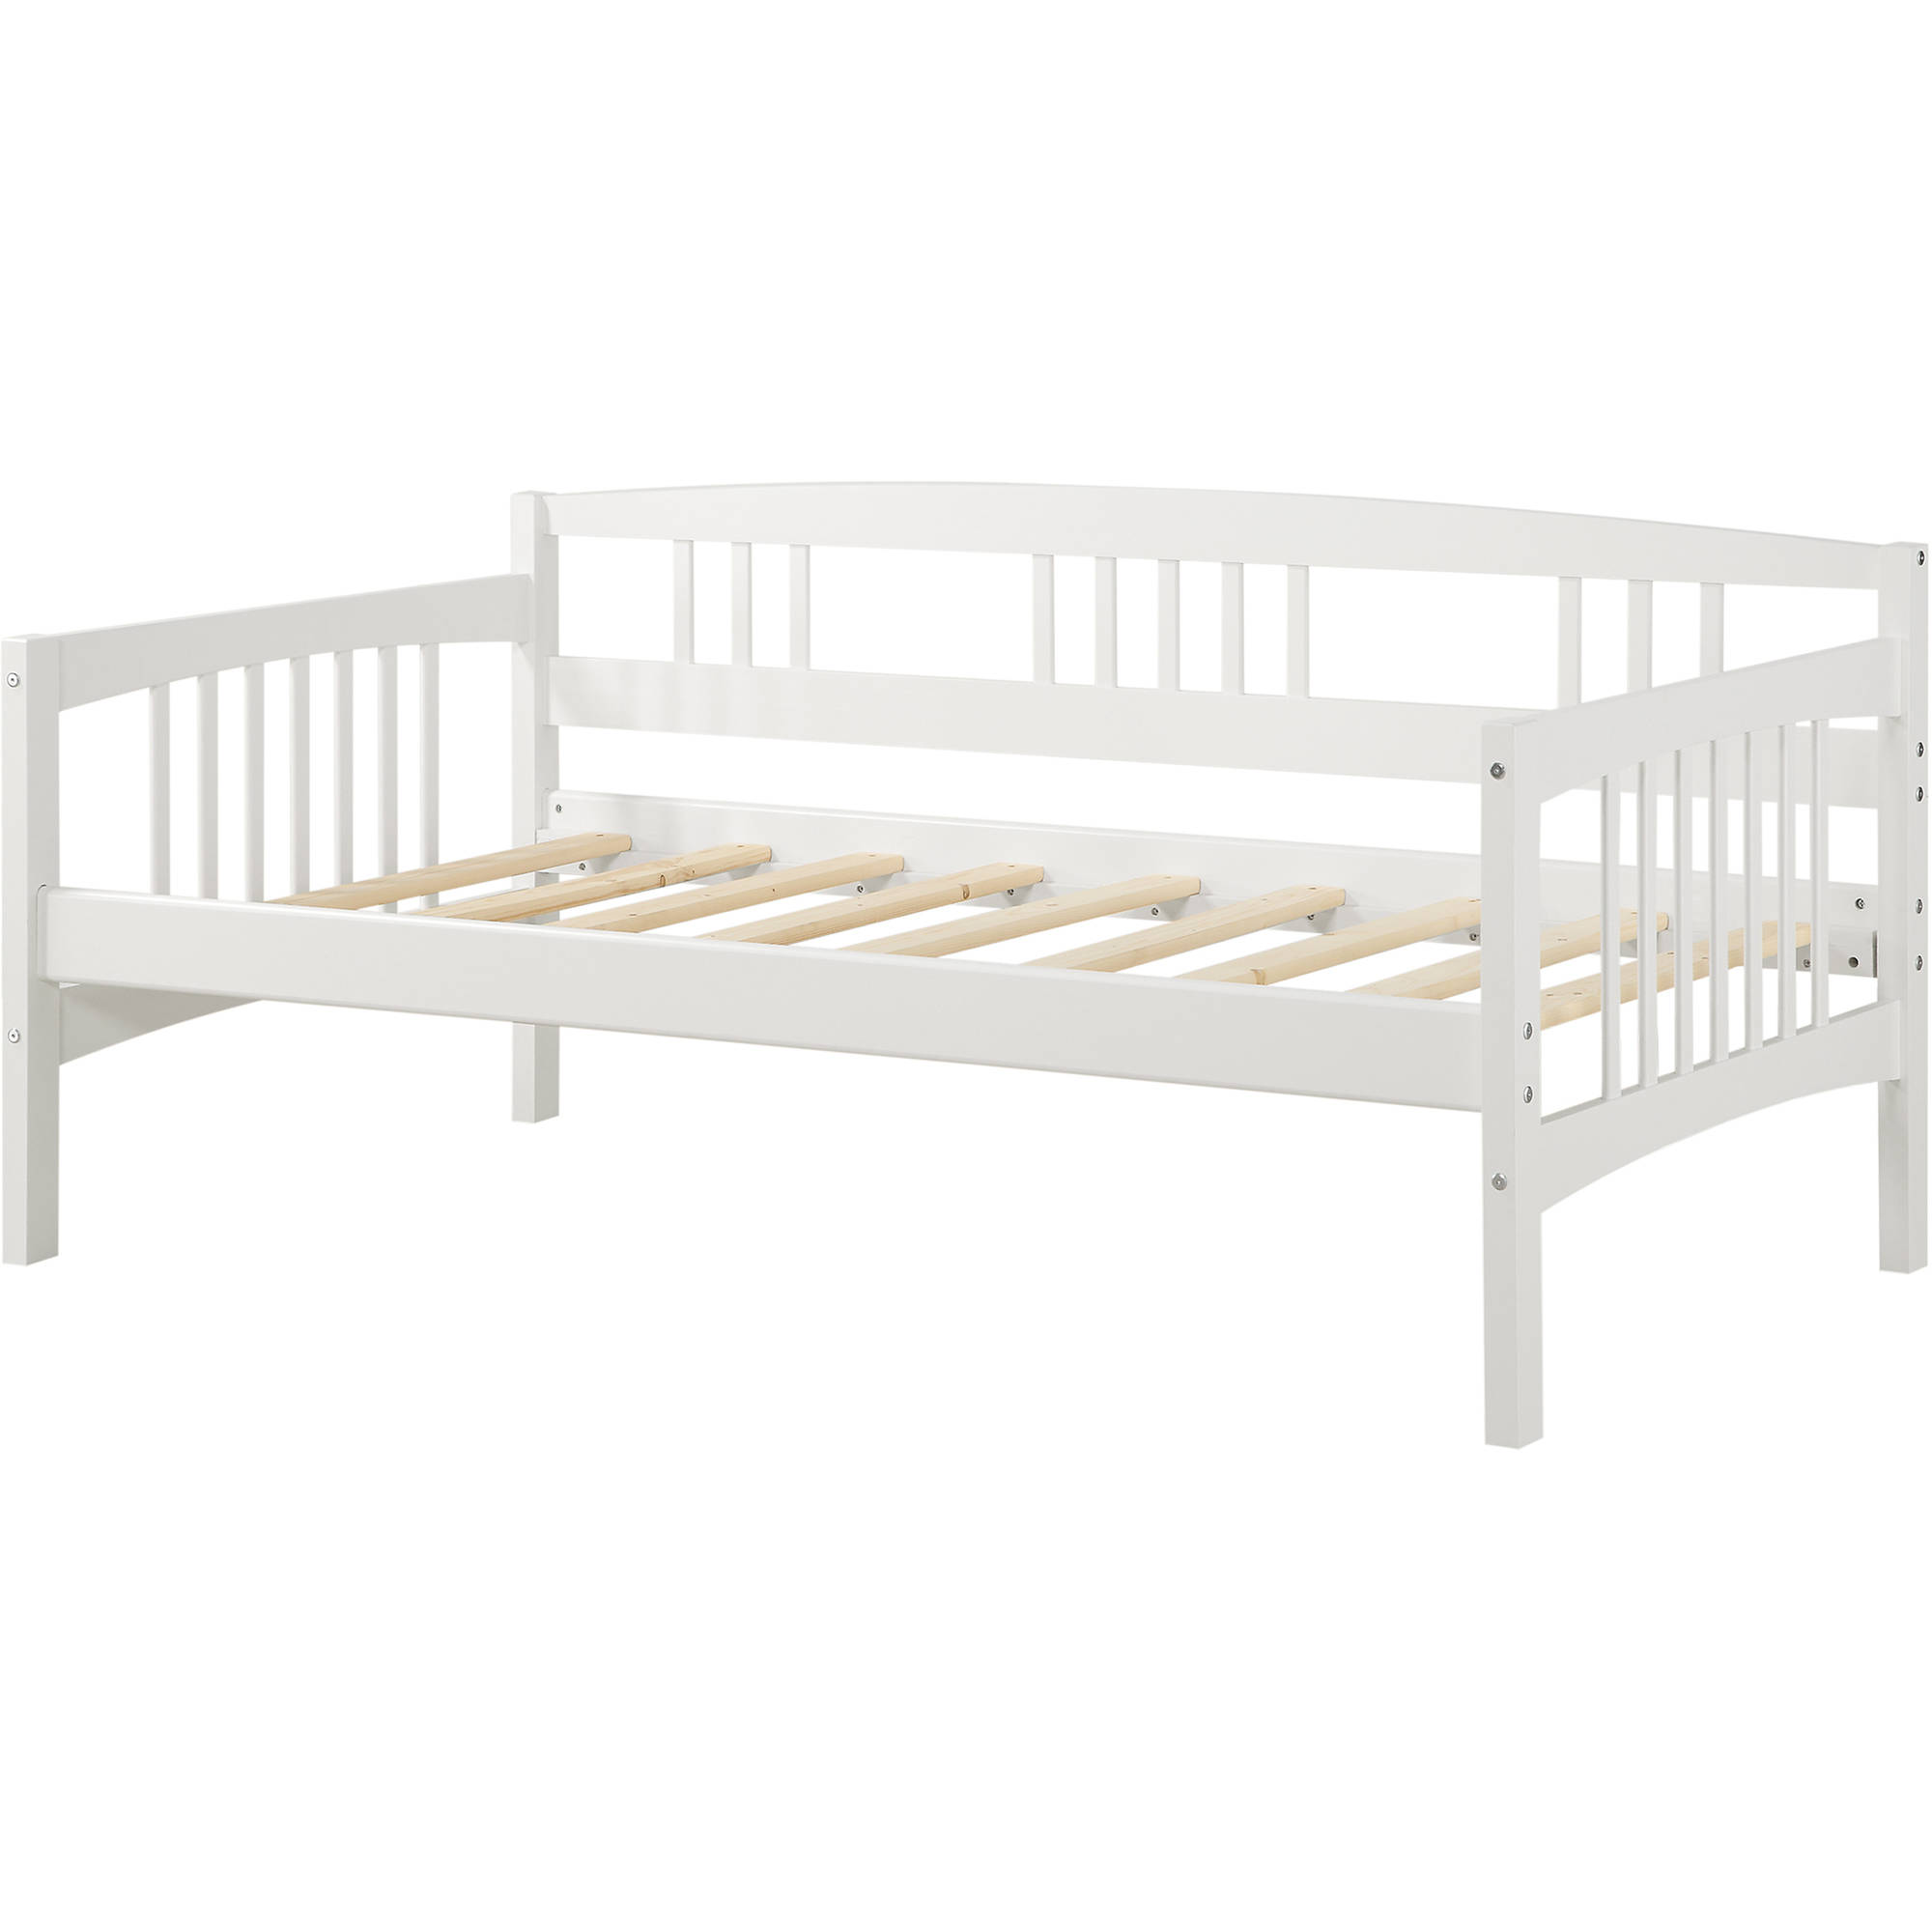 dorel living kayden twin daybed multiple colors walmartcom